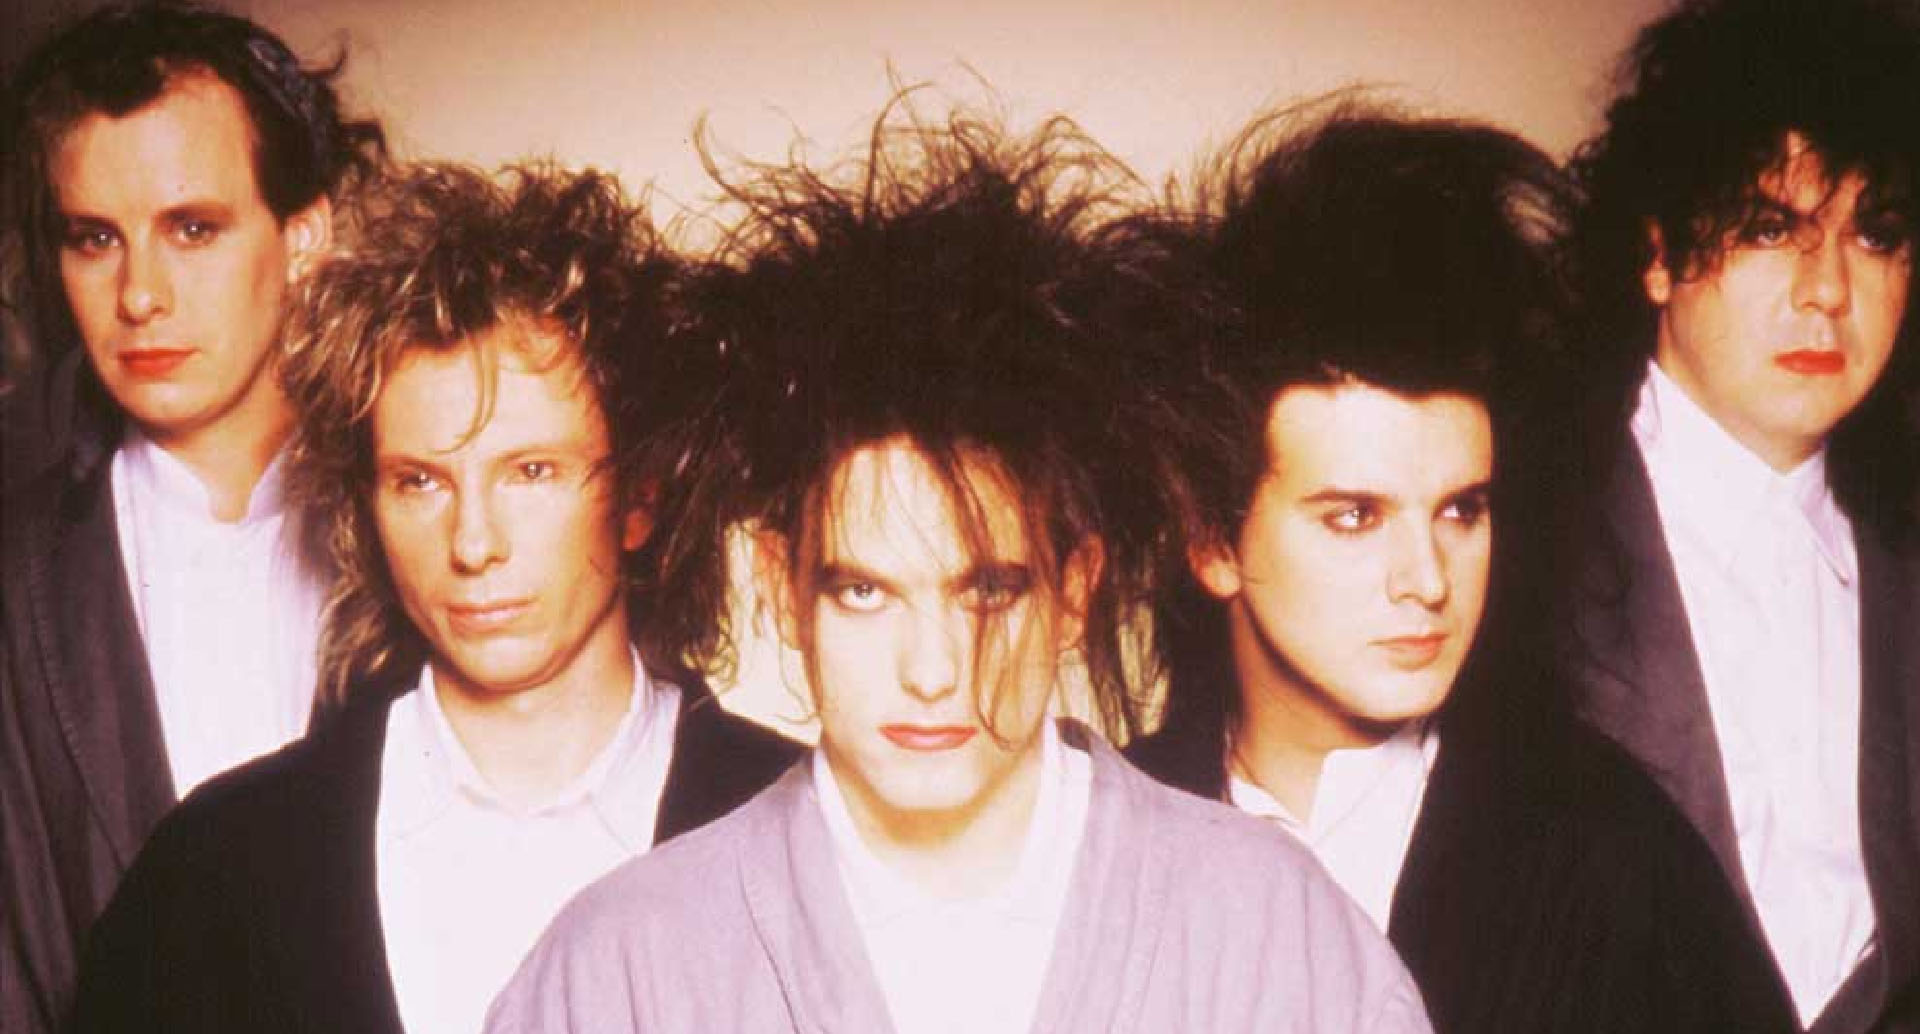 Watch The Cure's 'Live In Hyde Park' 40th anniversary concert movie at the Projector this July